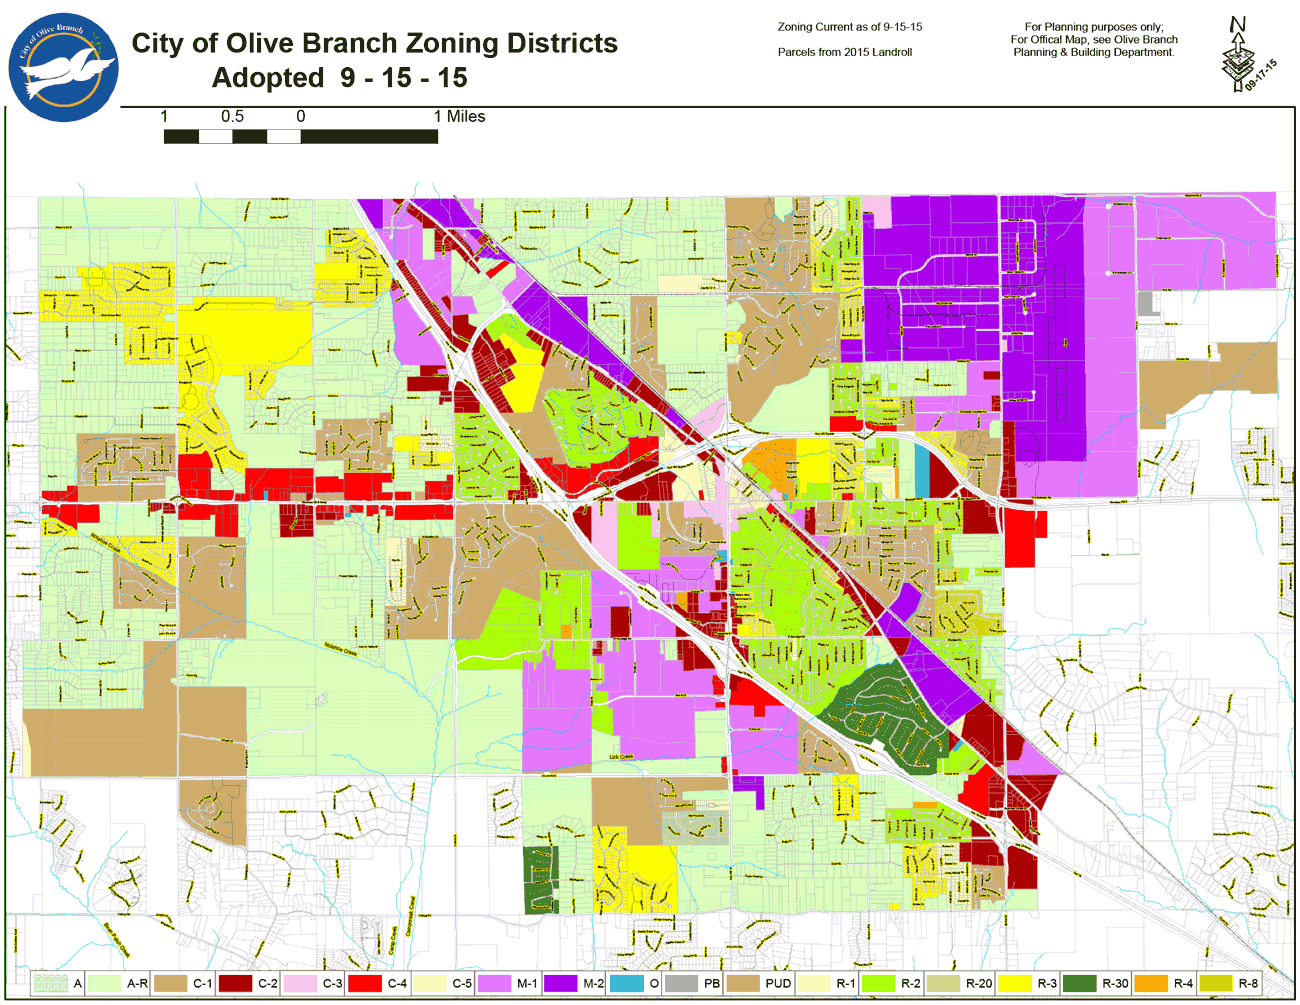 City Maps   City of Olive nch MS also 29 Map Of Desoto County Ms – NY County Map together with 11053 Elm Dr  Hernando  MS 38632   realtor  ® likewise Desoto County Zone Map New southaven Map – NY County Map as well  also DeSoto County BOCC   Departments   Planning and Zoning as well RB Holdings  LLC   Posts   Facebook as well Desoto County  1895 moreover  in addition Mississippi Geospatial Clearinghouse additionally Southaven  MS in addition Mississippi Geospatial Clearinghouse also DeSoto County BOCC   Departments   Planning and Zoning additionally  besides PDF  Multi Scale GIS Data Driven Method for Early essment of besides Mississippi Geospatial Clearinghouse. on desoto county gis map